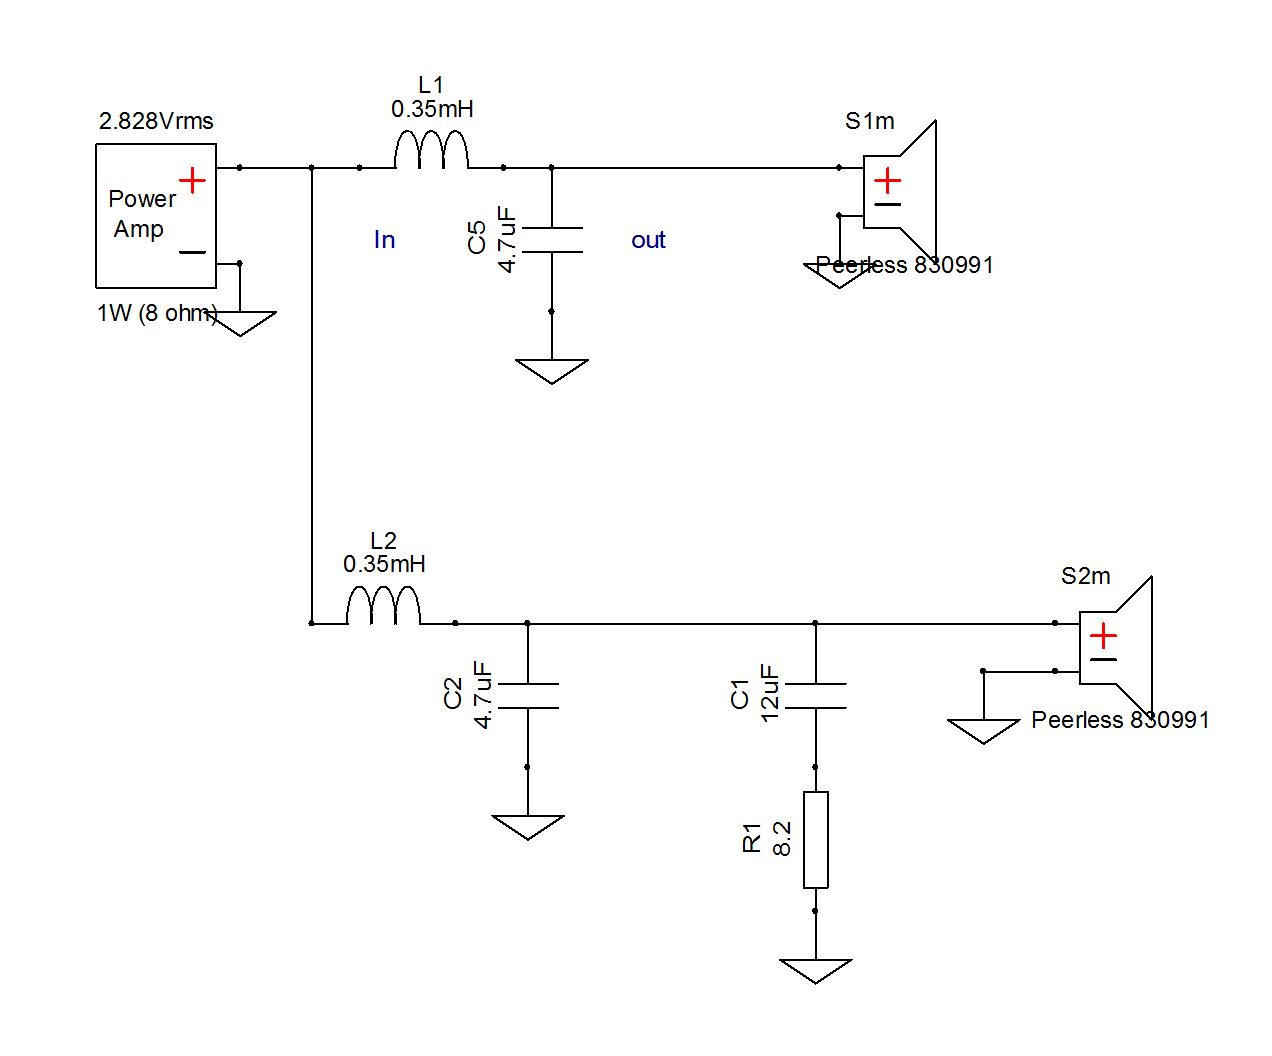 A Speaker Makers Journey Crossover Basics The Zobel Capacitor Fourthorder Lowpass Filter Circuit Diagram For Clarity Well Leave Behind Lm 1 Schematic And Create New One With Two Identical Woofers 2nd Order Low Pass Filters Set To 4 Khz